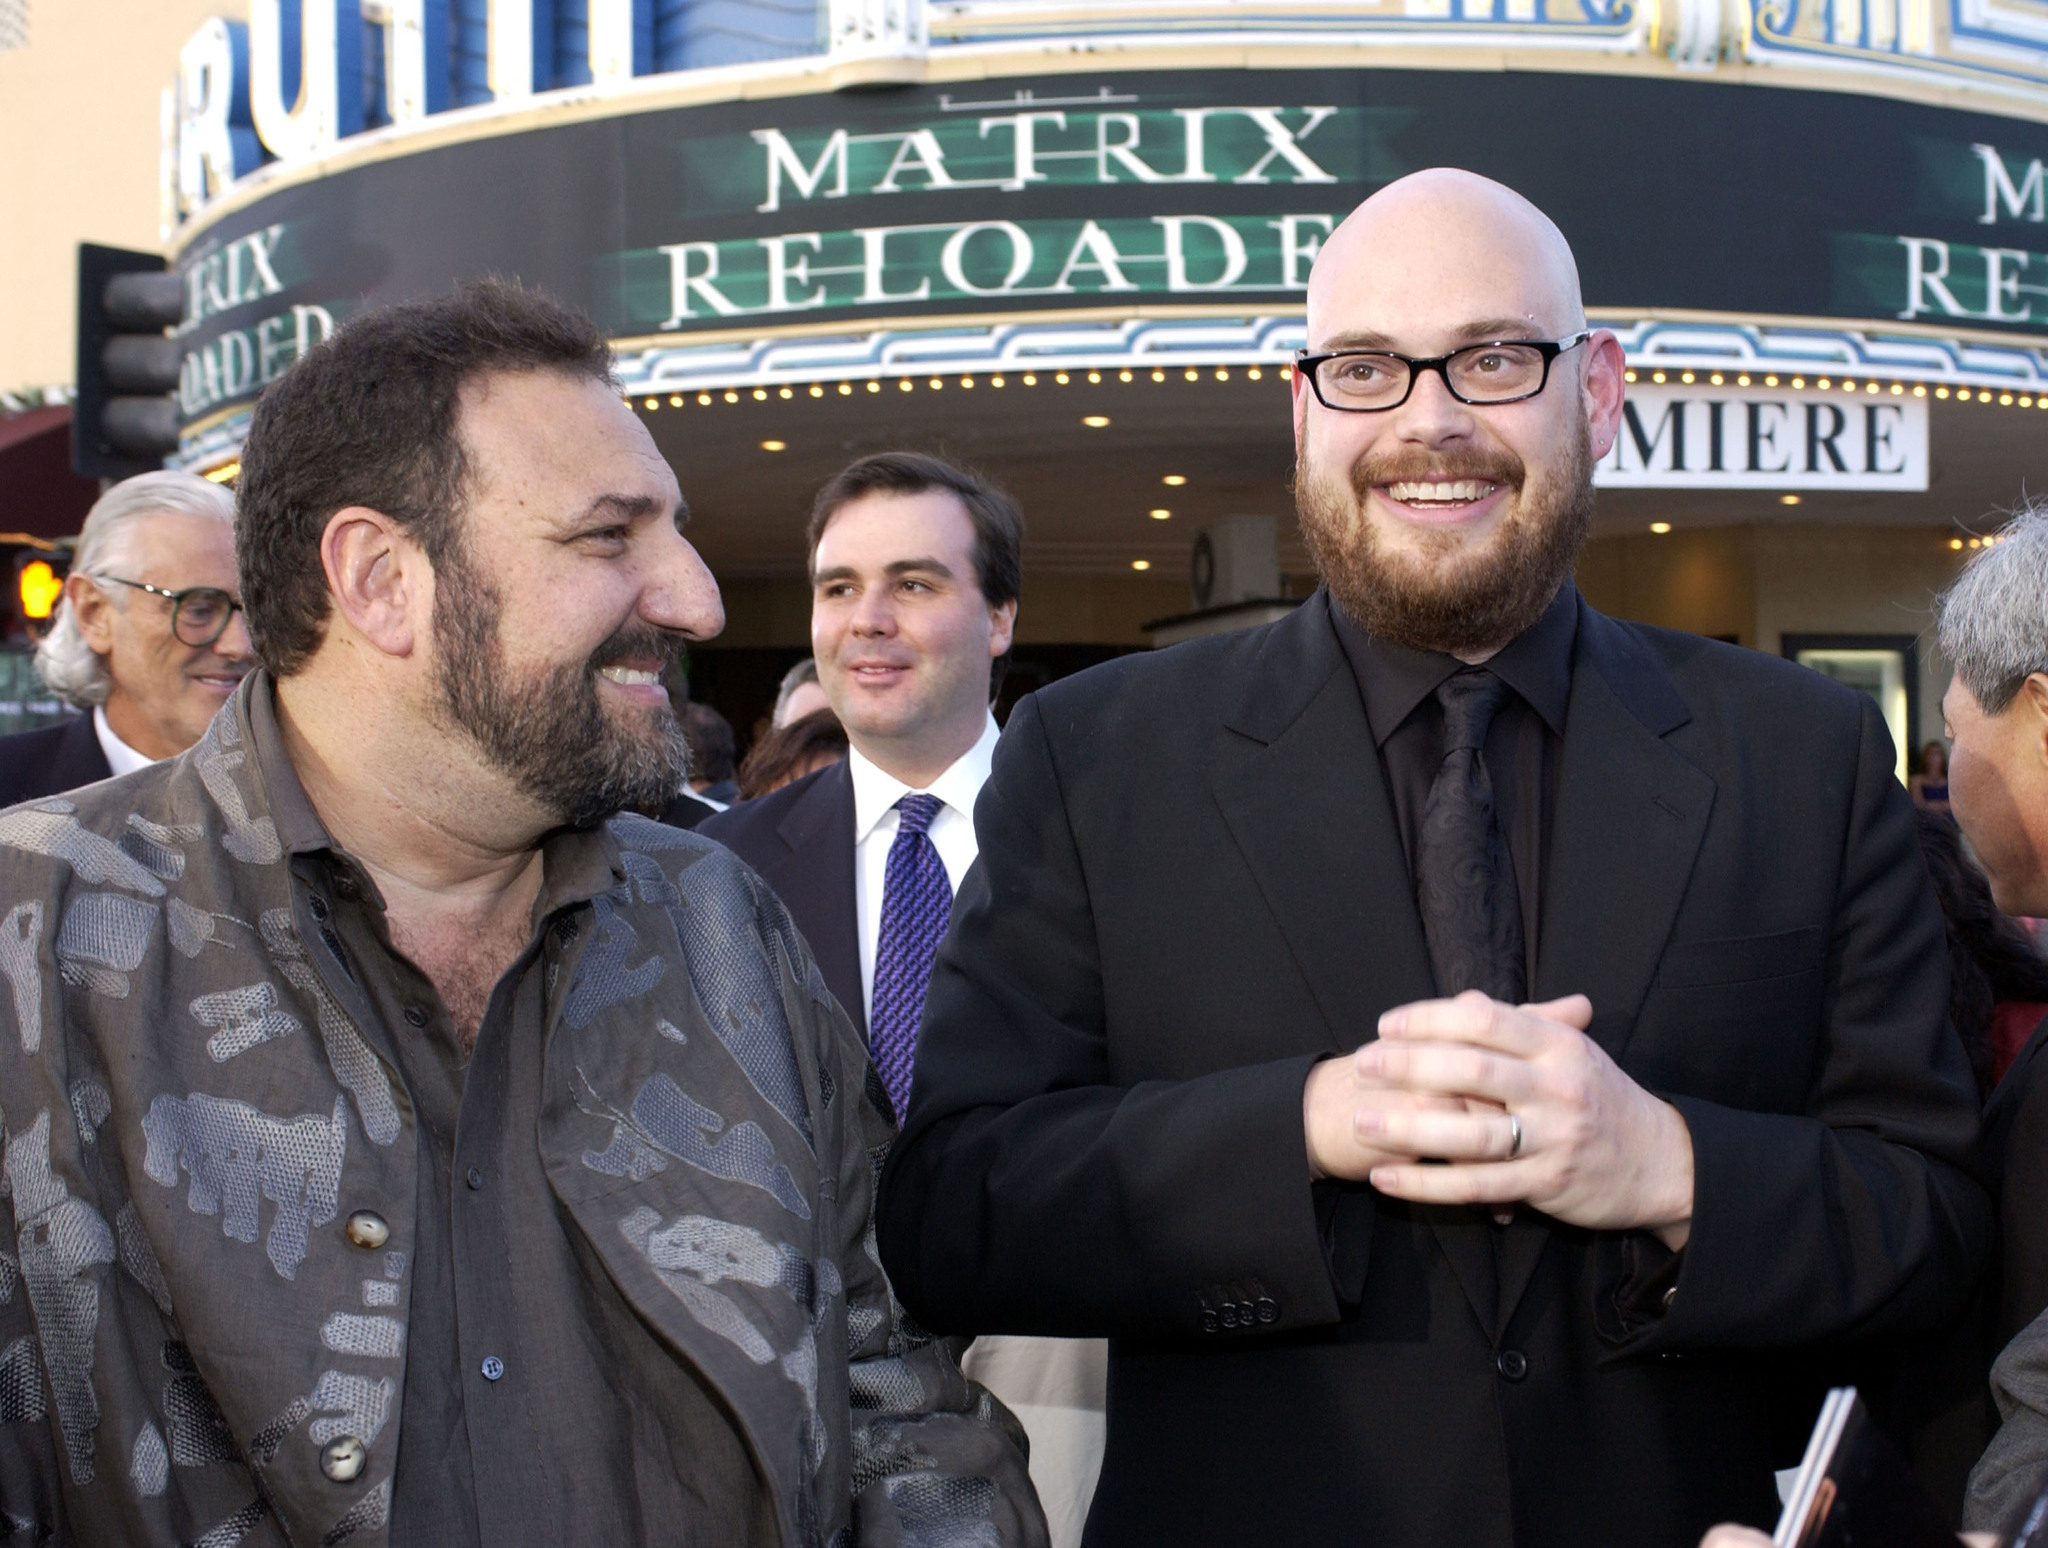 Joel Silver and Lilly Wachowski at an event for The Matrix Reloaded (2003)